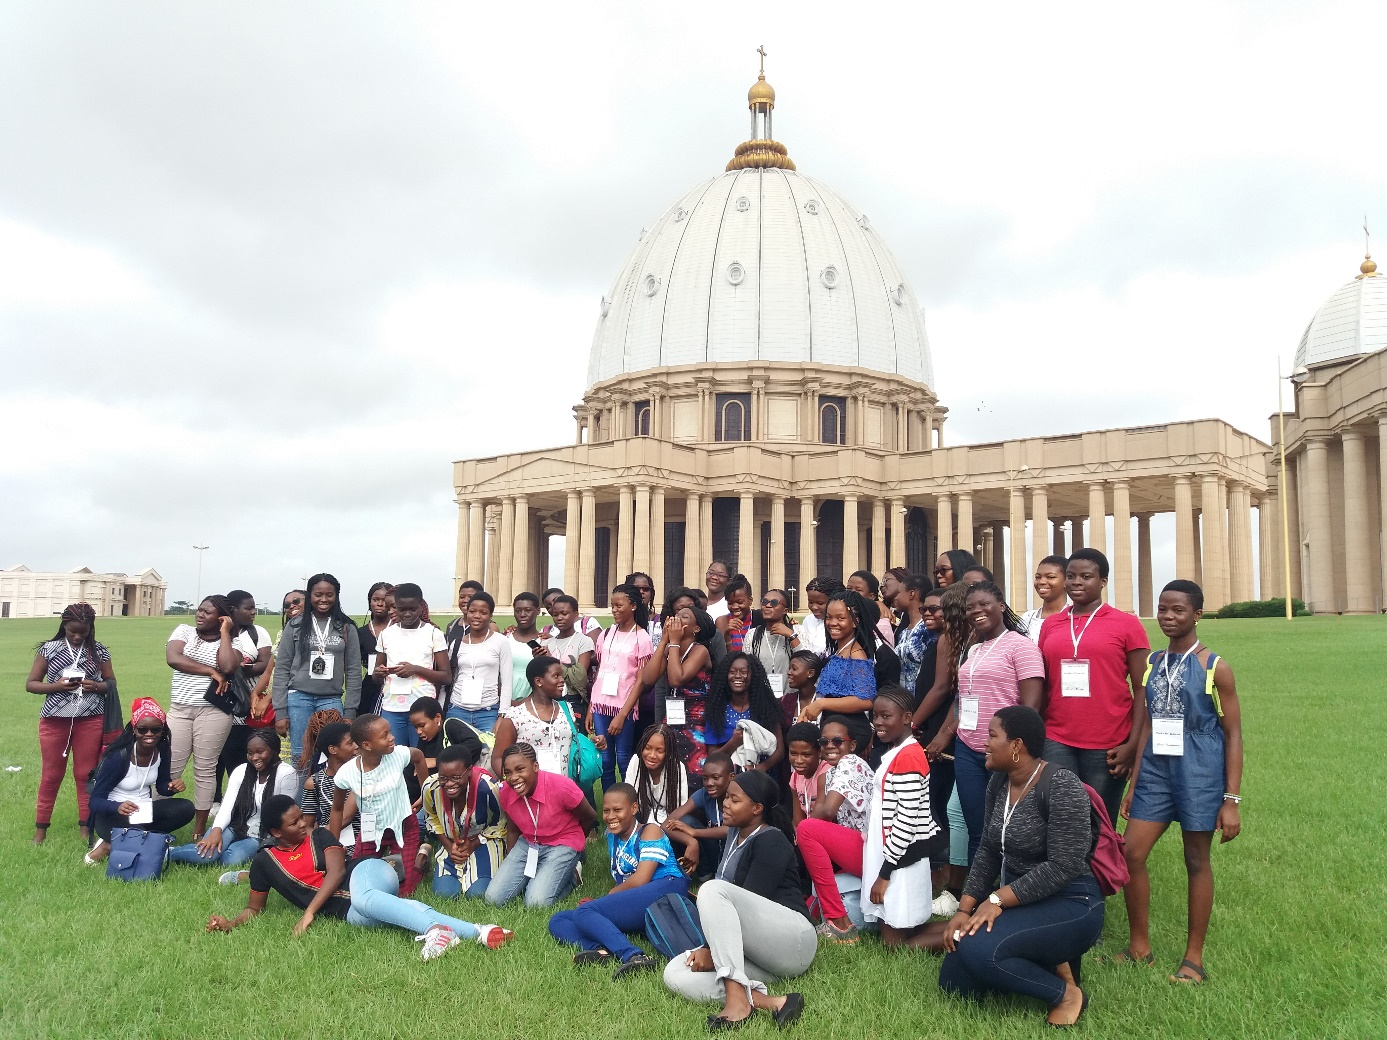 Camp Xavier 2018 photo du groupe devant la basilique